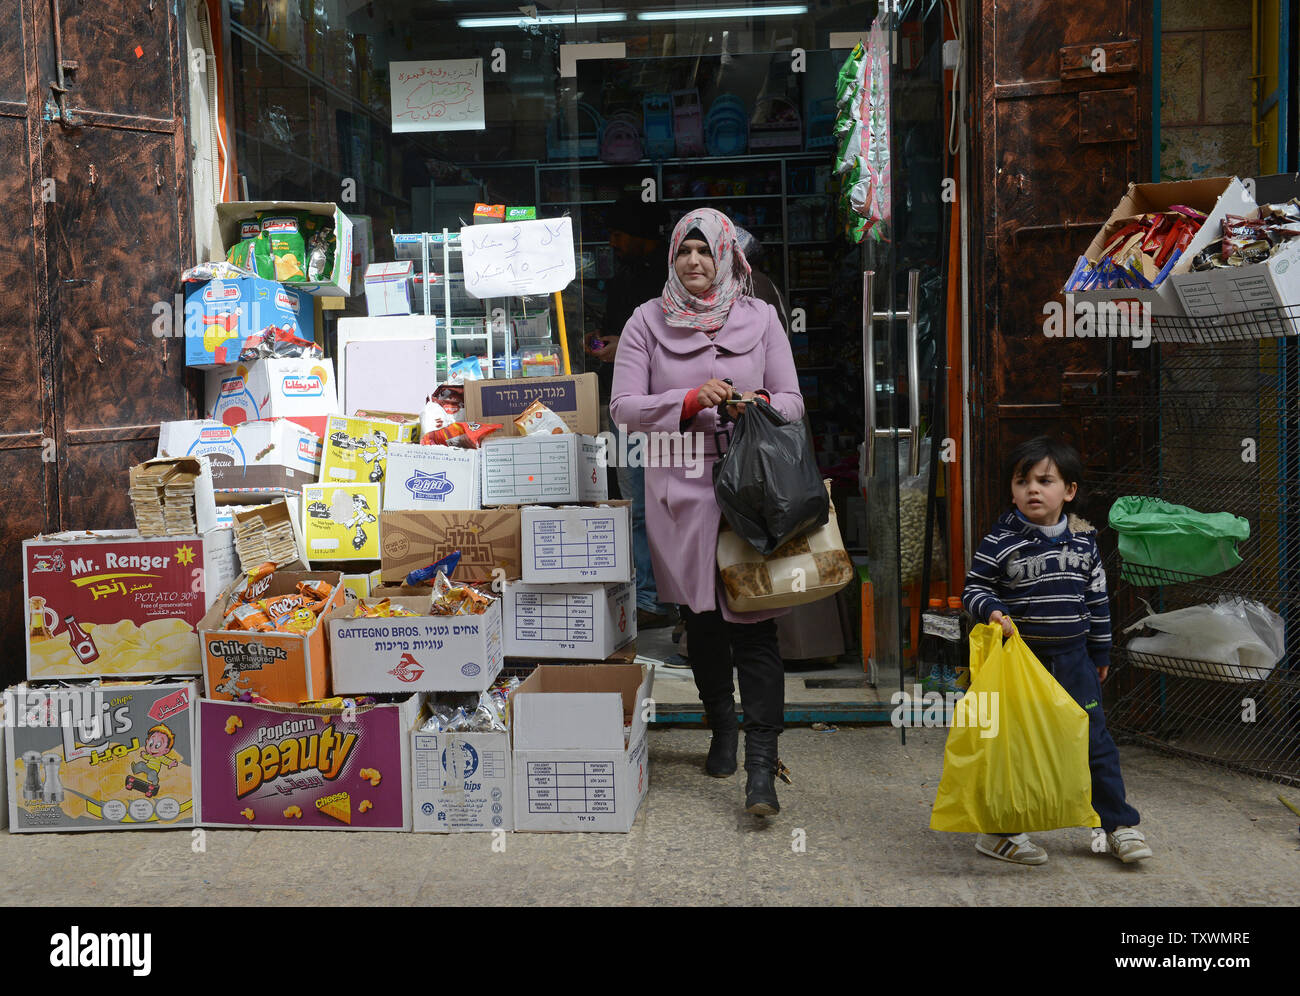 A Palestinian leaves a shop selling Israeli products in the Old City in Bethlehem, West Bank, February 11, 2015. A high level national Palestinian committee announced it has instructed stores across the West Bank to ban products from six major Israeli companies, which are: Tnuva, the Strauss Group, Osem, Elite Prigate and Jafora-Tabori. The ban is meant to countermeasure Israel's decision to withhold Palestinian tax revenue it collects on behalf of the Palestinian Authority. West Bank grocers  must stop selling Israeli products within two weeks from today. Photo by Debbie Hill/UPI - Stock Image